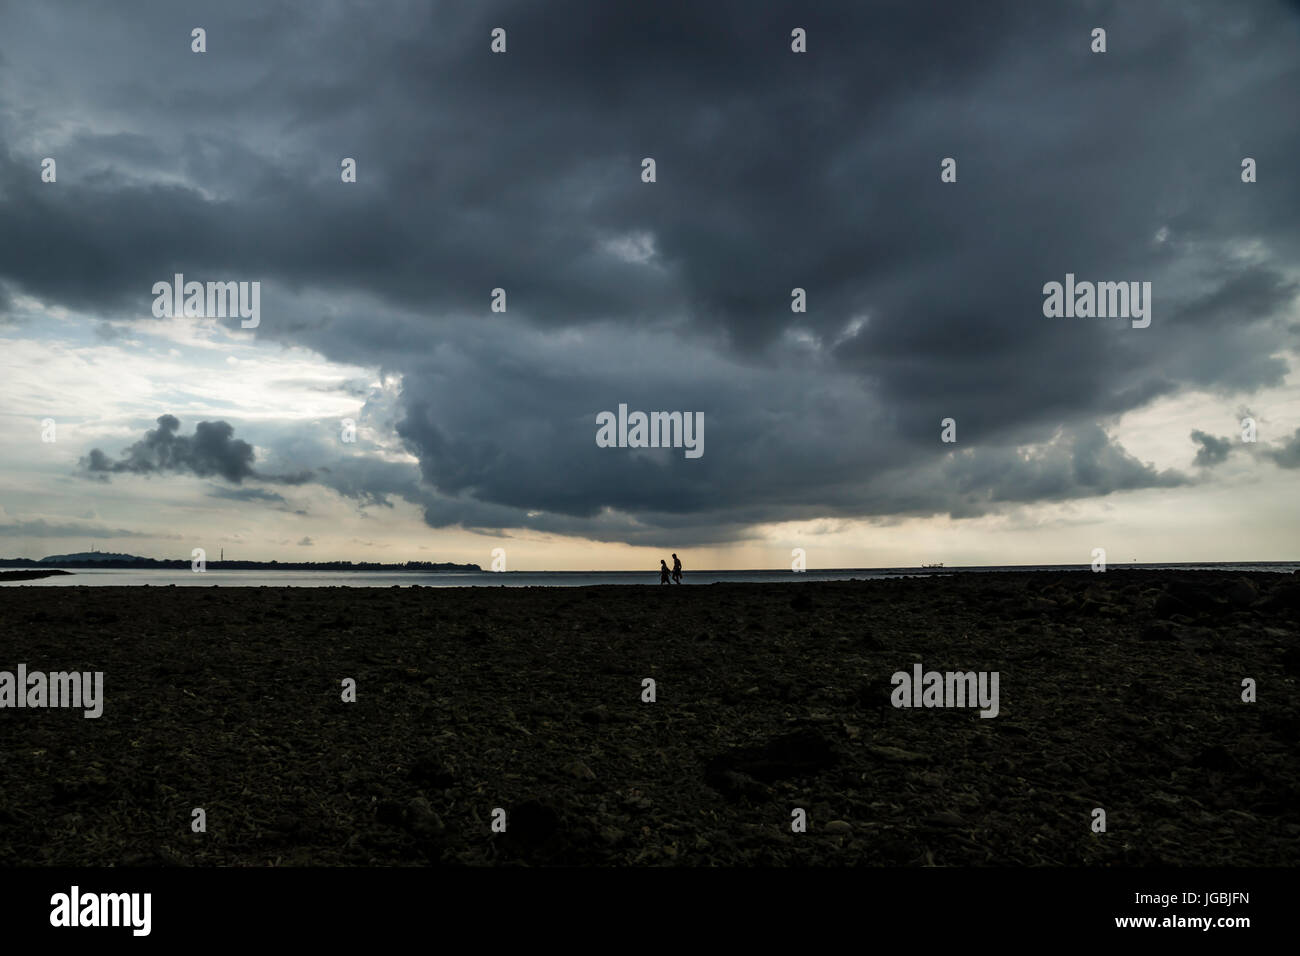 People walking on coral scrap under massive cloud in Gili Air, Lombok, Indonesia - Stock Image